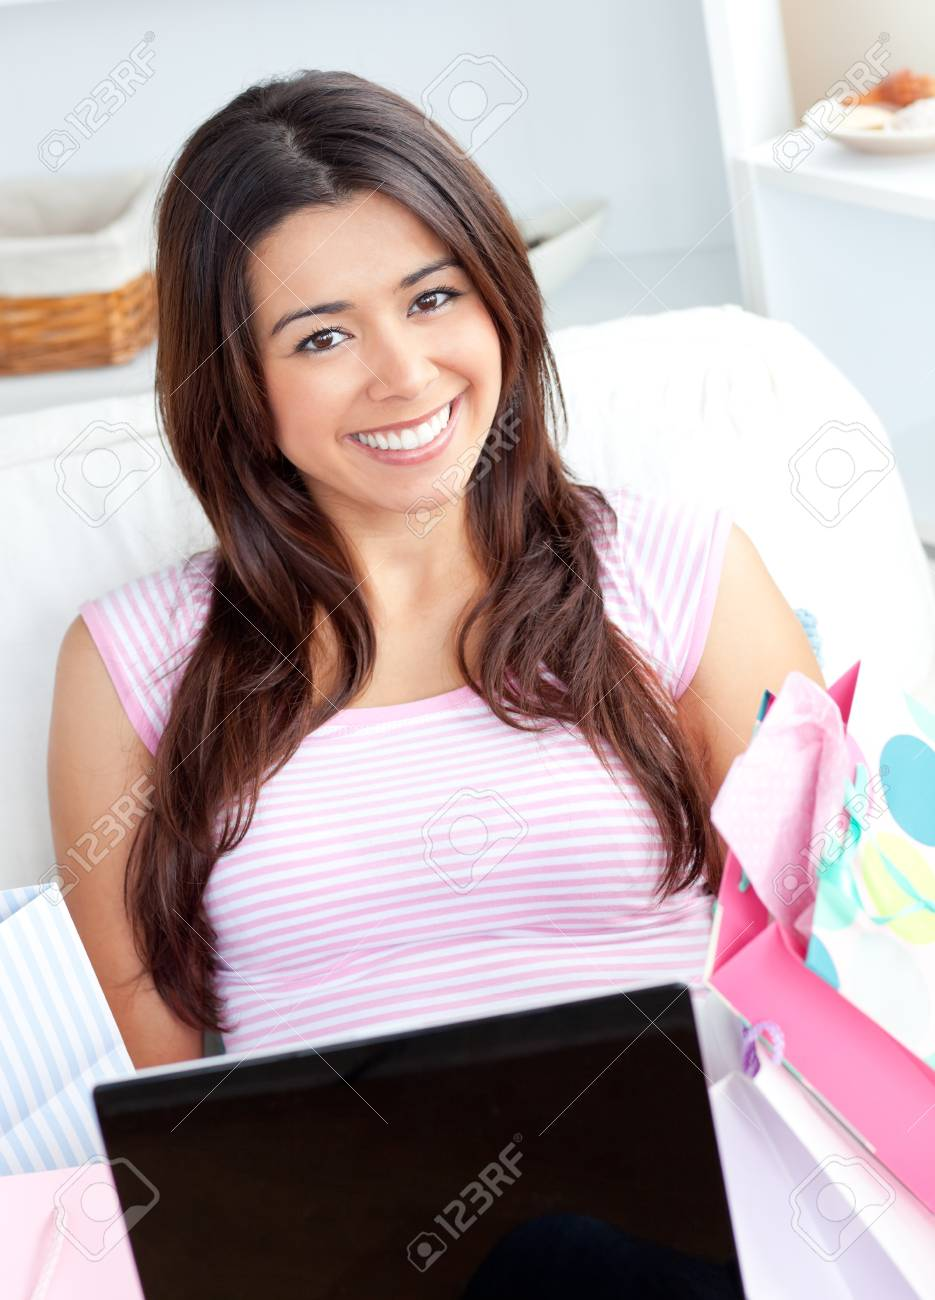 Cute young woman is using a laptop Stock Photo - 10250469